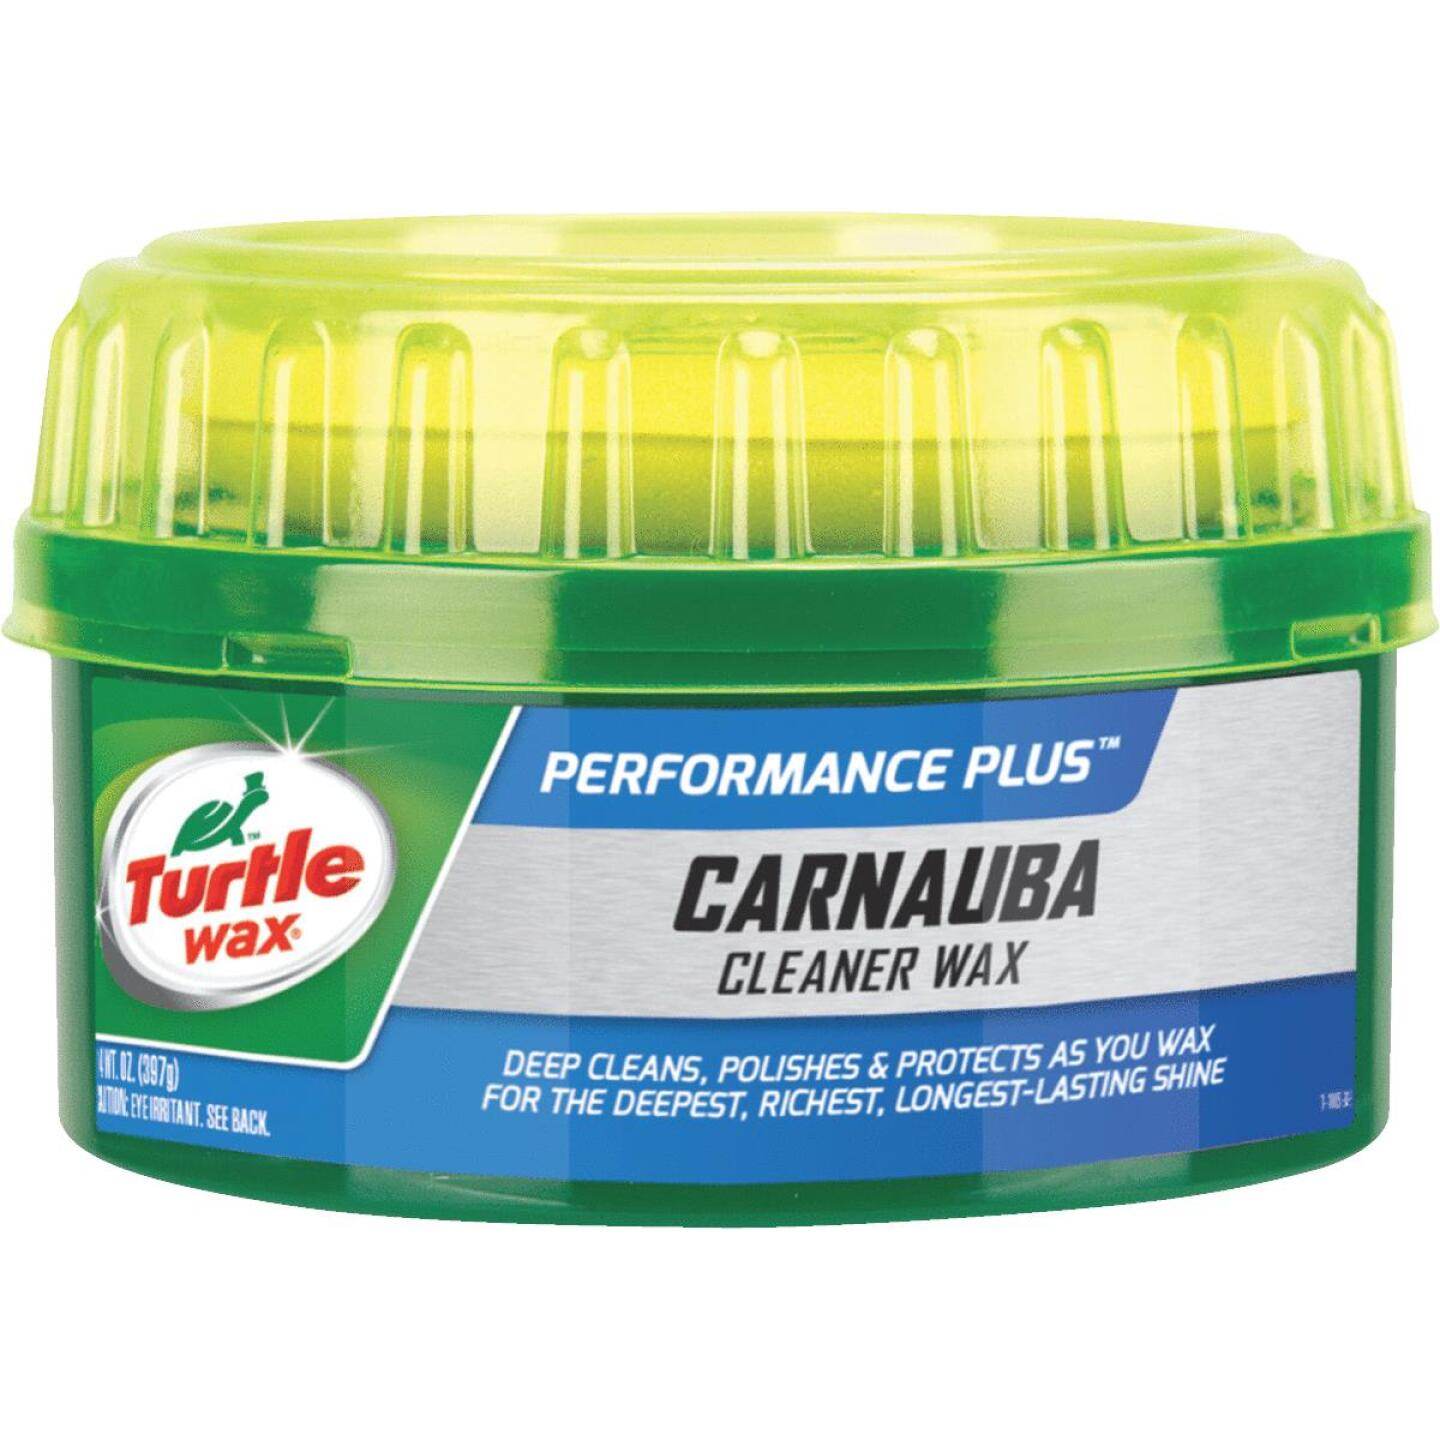 Turtle Wax 14 oz Carnauba Paste Car Wax Image 1